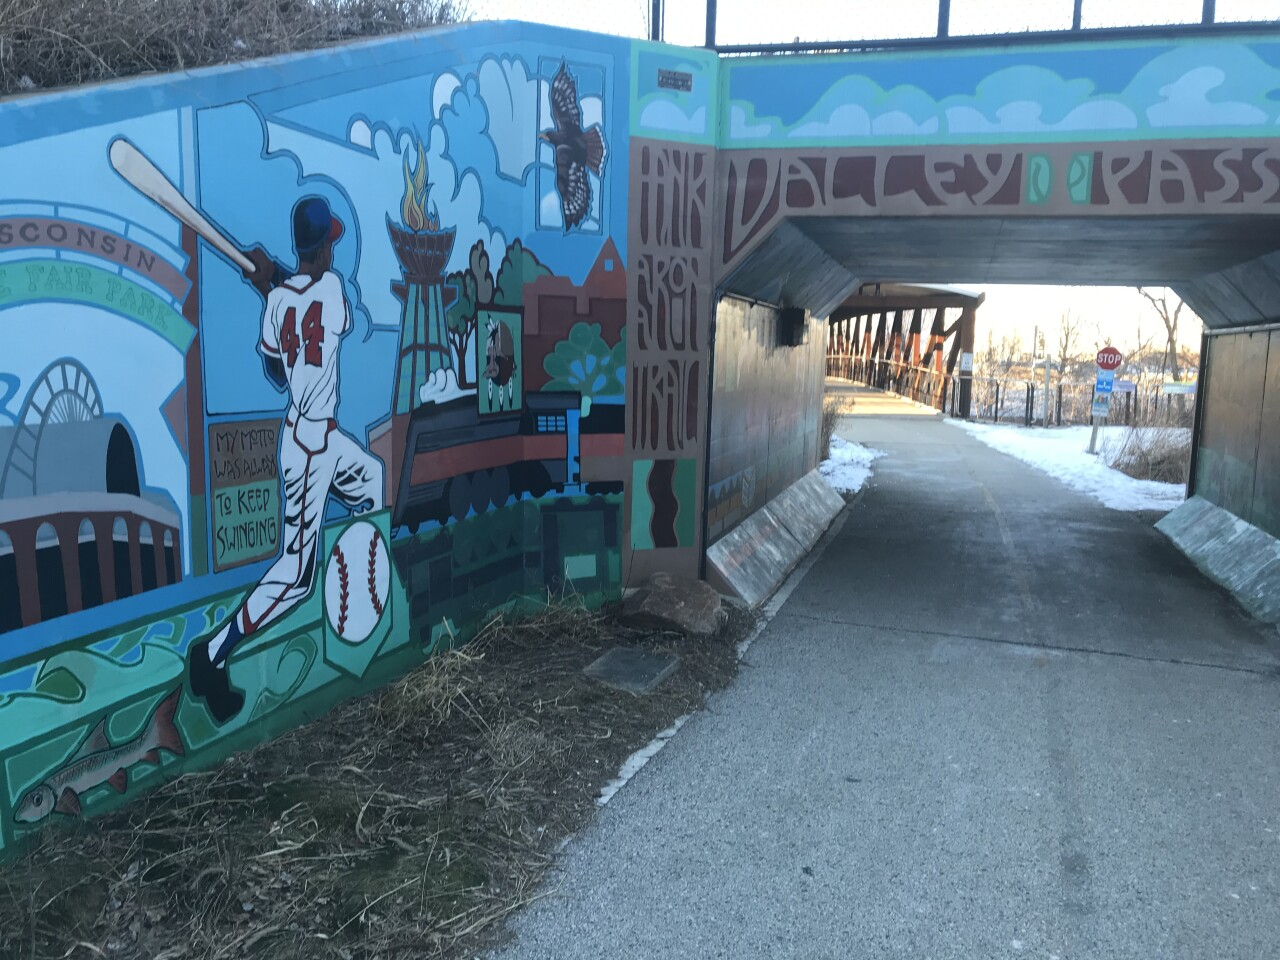 A painting of Hank Aaron near the trail bearing his name.